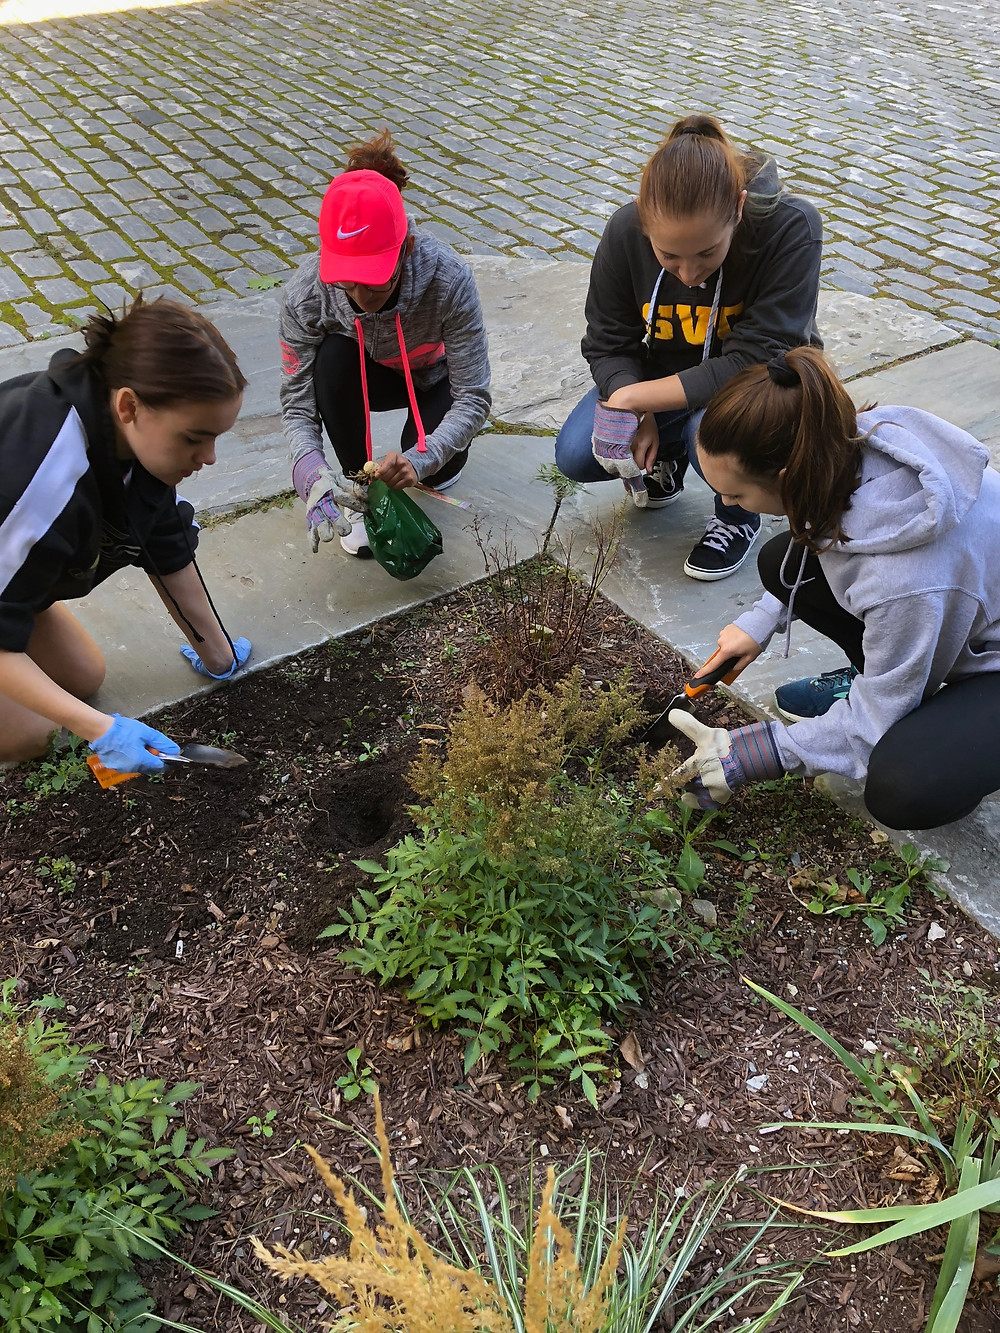 Volunteering by planting flowers and plants